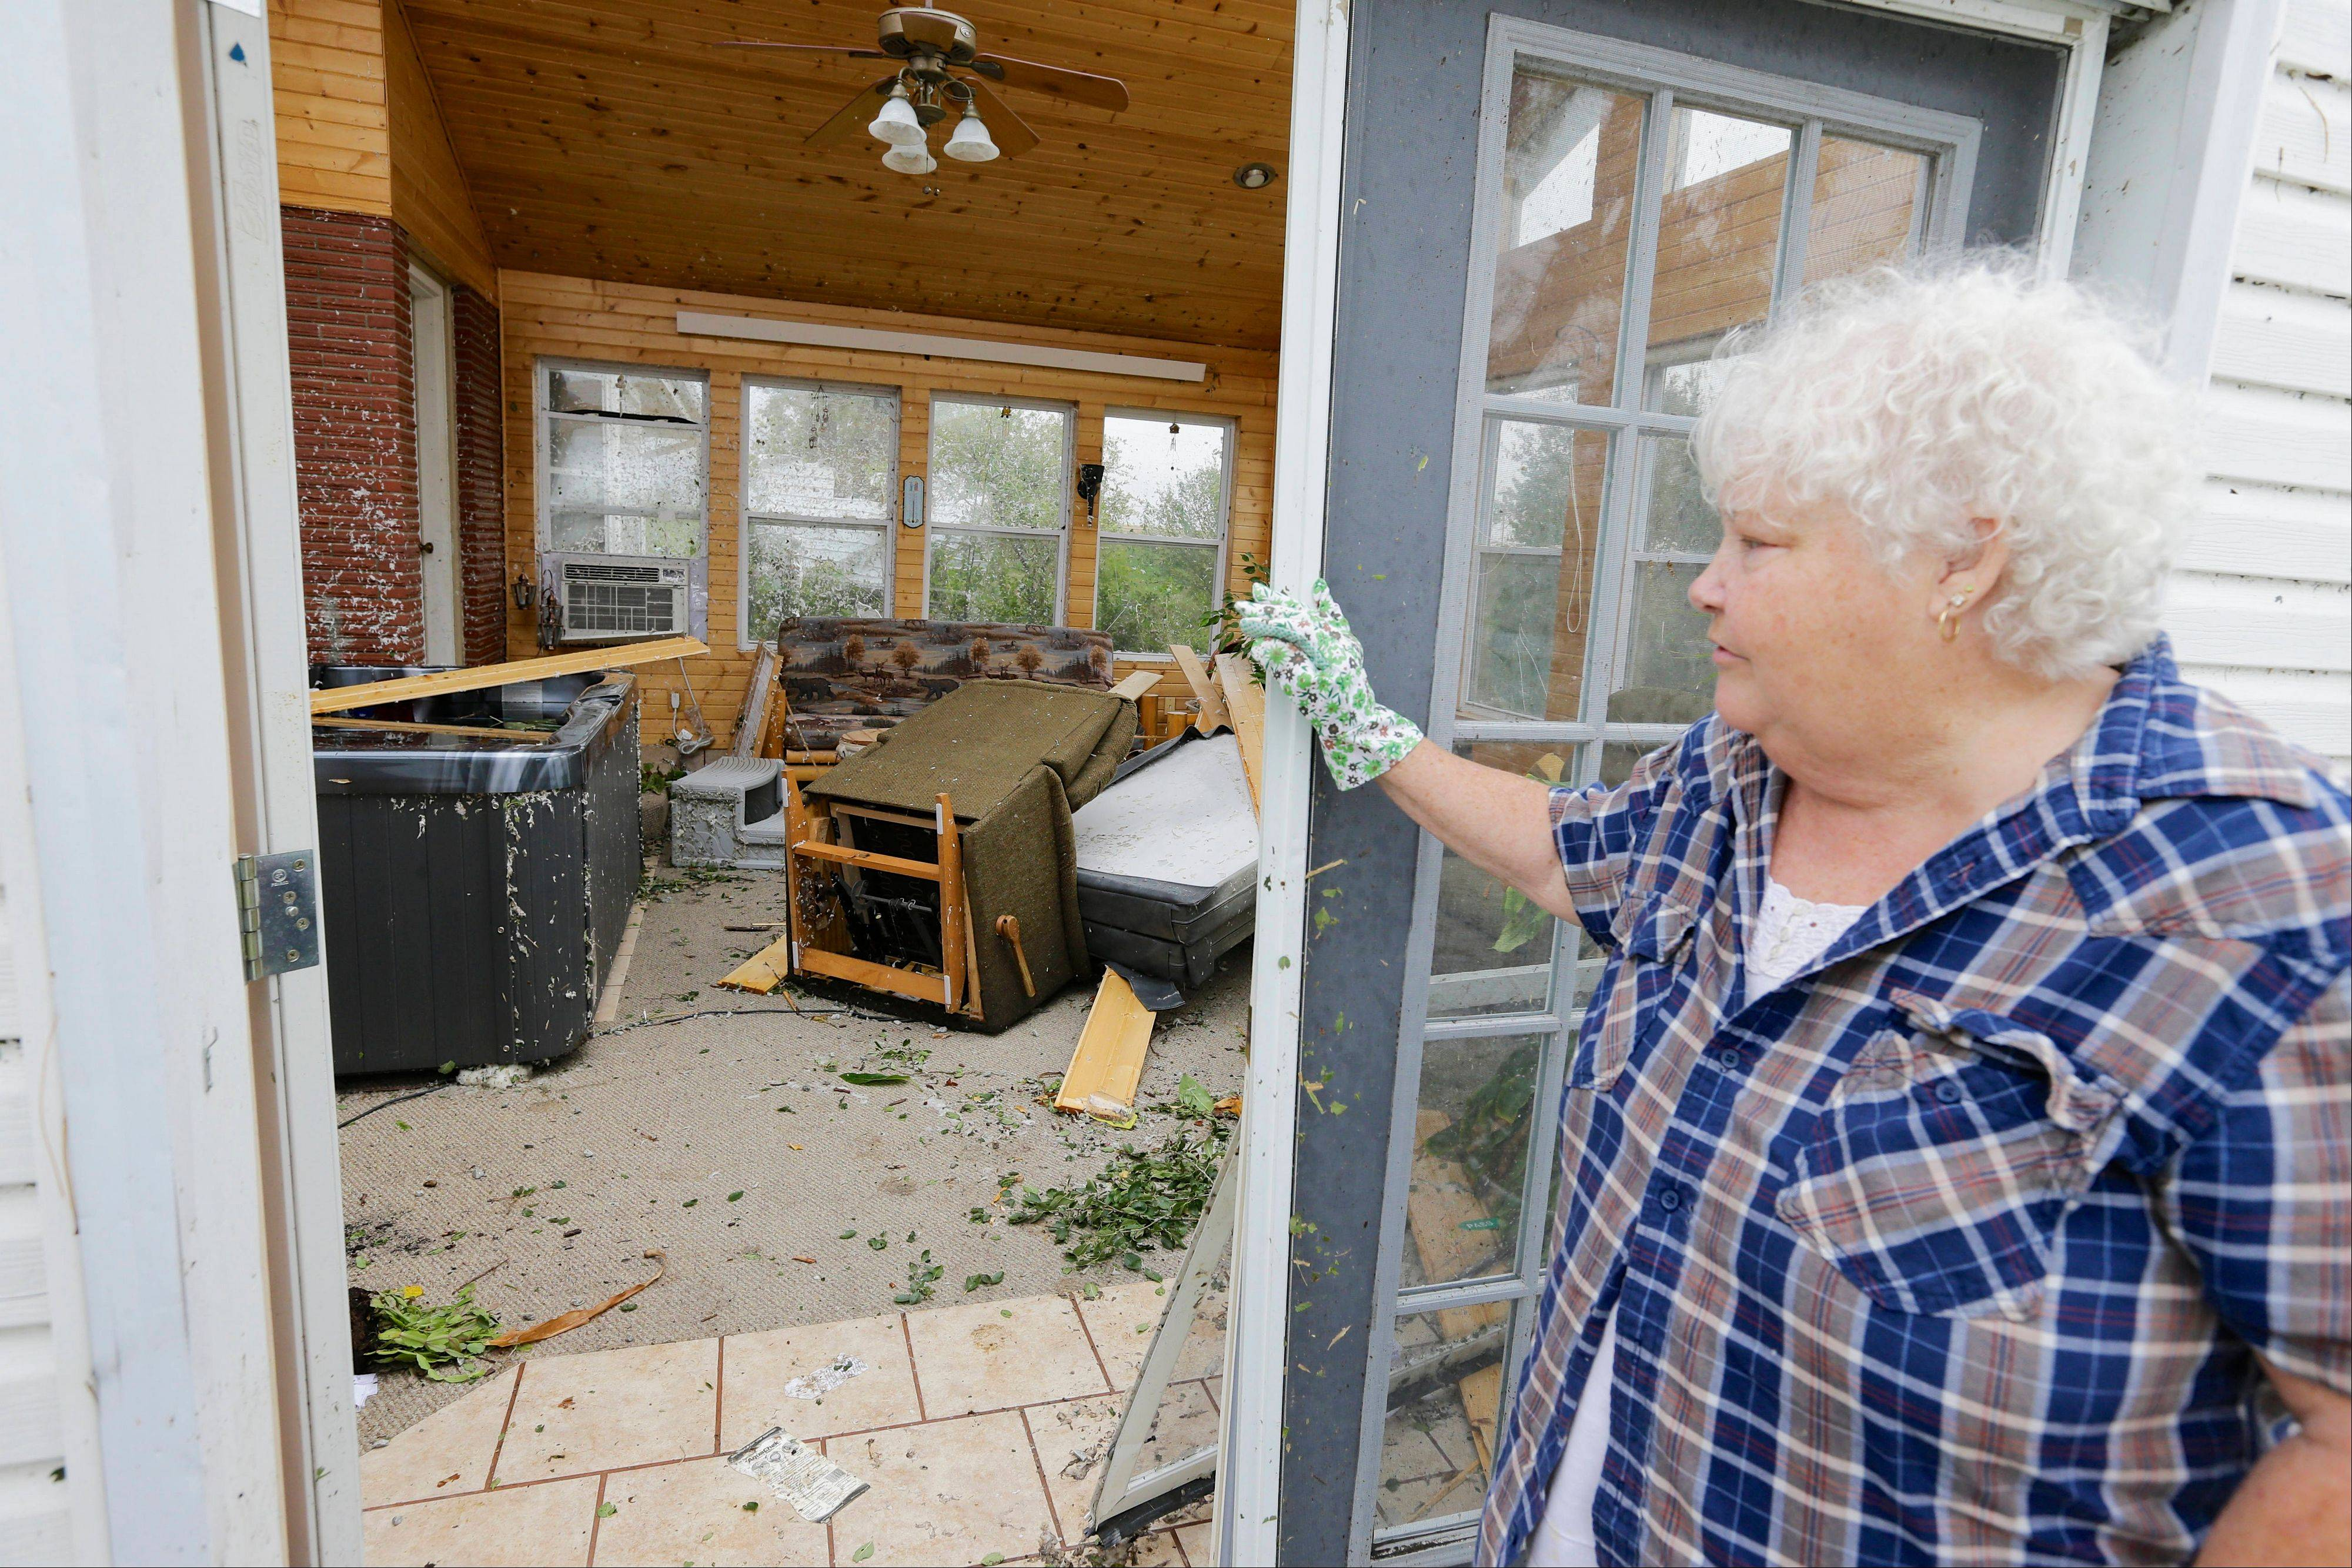 Vicki Kempkes looks over her destroyed recreation room in Bennet, Neb., Friday, Oct. 4, 2013. Powerful storms crawled into the Midwest on Friday, dumping heavy snow in South Dakota, spawning a tornado in Nebraska and threatening dangerous thunderstorms from Oklahoma to Wisconsin.